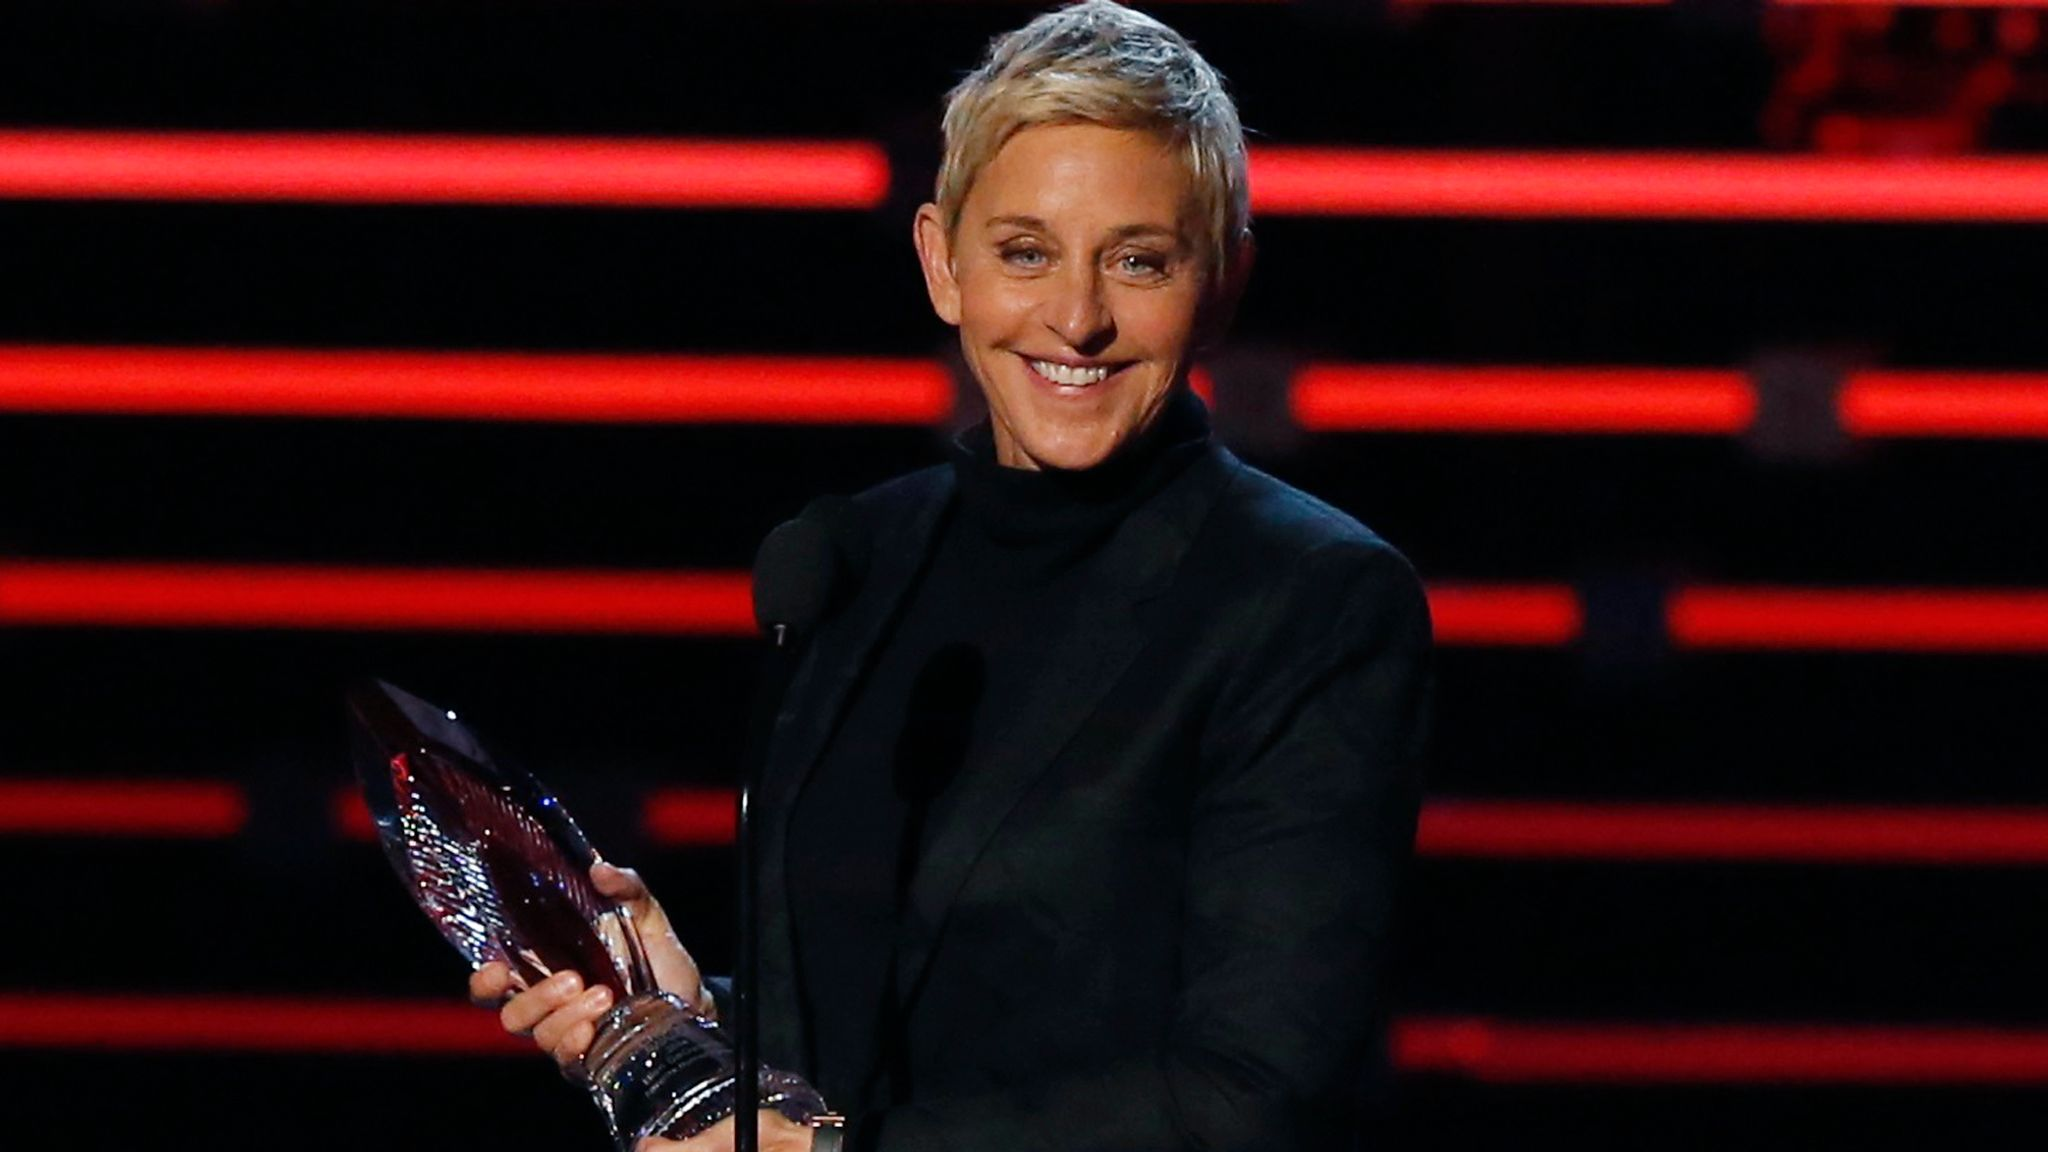 Ellen DeGeneres accepts the humanitarian award at the People's Choice Awards 2016 in Los Angeles, California January 6, 2016. REUTERS/Mario Anzuoni DOWNLOAD PICTURE Date: 07/01/2016 13:00 Dimensions: 2200 x 1688 Size: 1.2MB Edit Status: new Category: E Topic Codes: ENT US Fixture Identifier: TB3EC1709XAM4 Byline: Mario Anzuoni City: Los Angeles Country Name: UNITED STATES Country Code: USA OTR: LOA172 Credit: REUTERS Source: Reuters Caption Writer: HB Source News Feeds: Reuters Marketplace - RPA